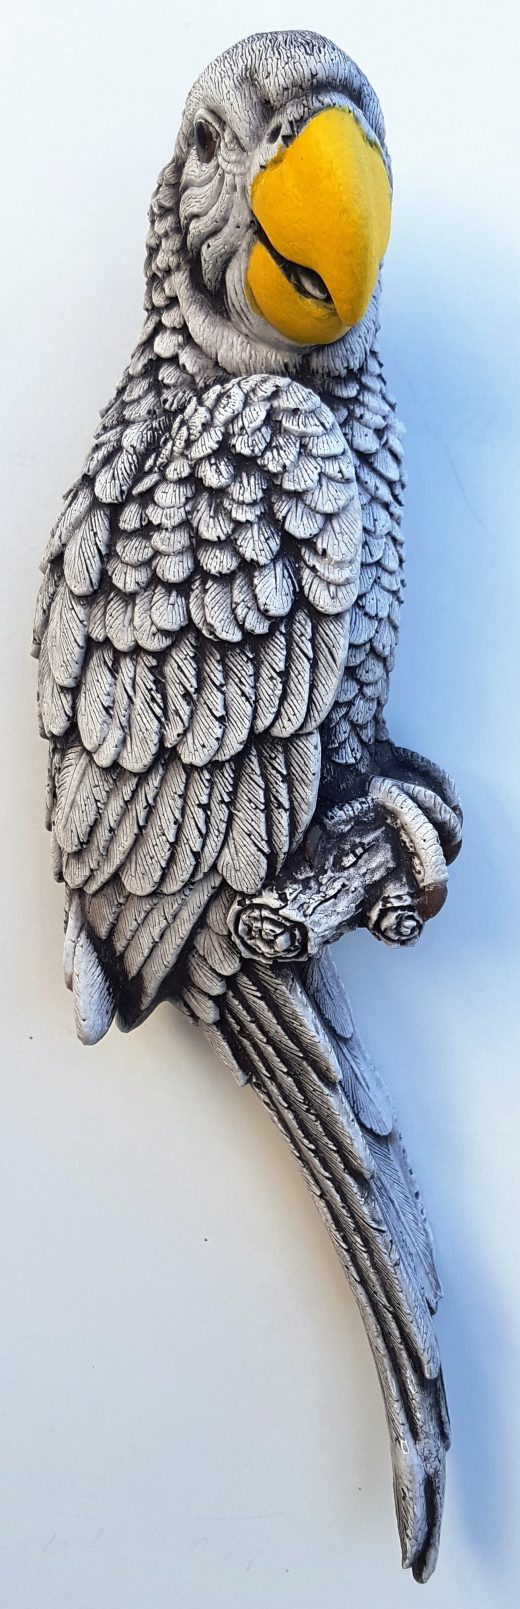 Parrot Wall Plaque 32 cm tall